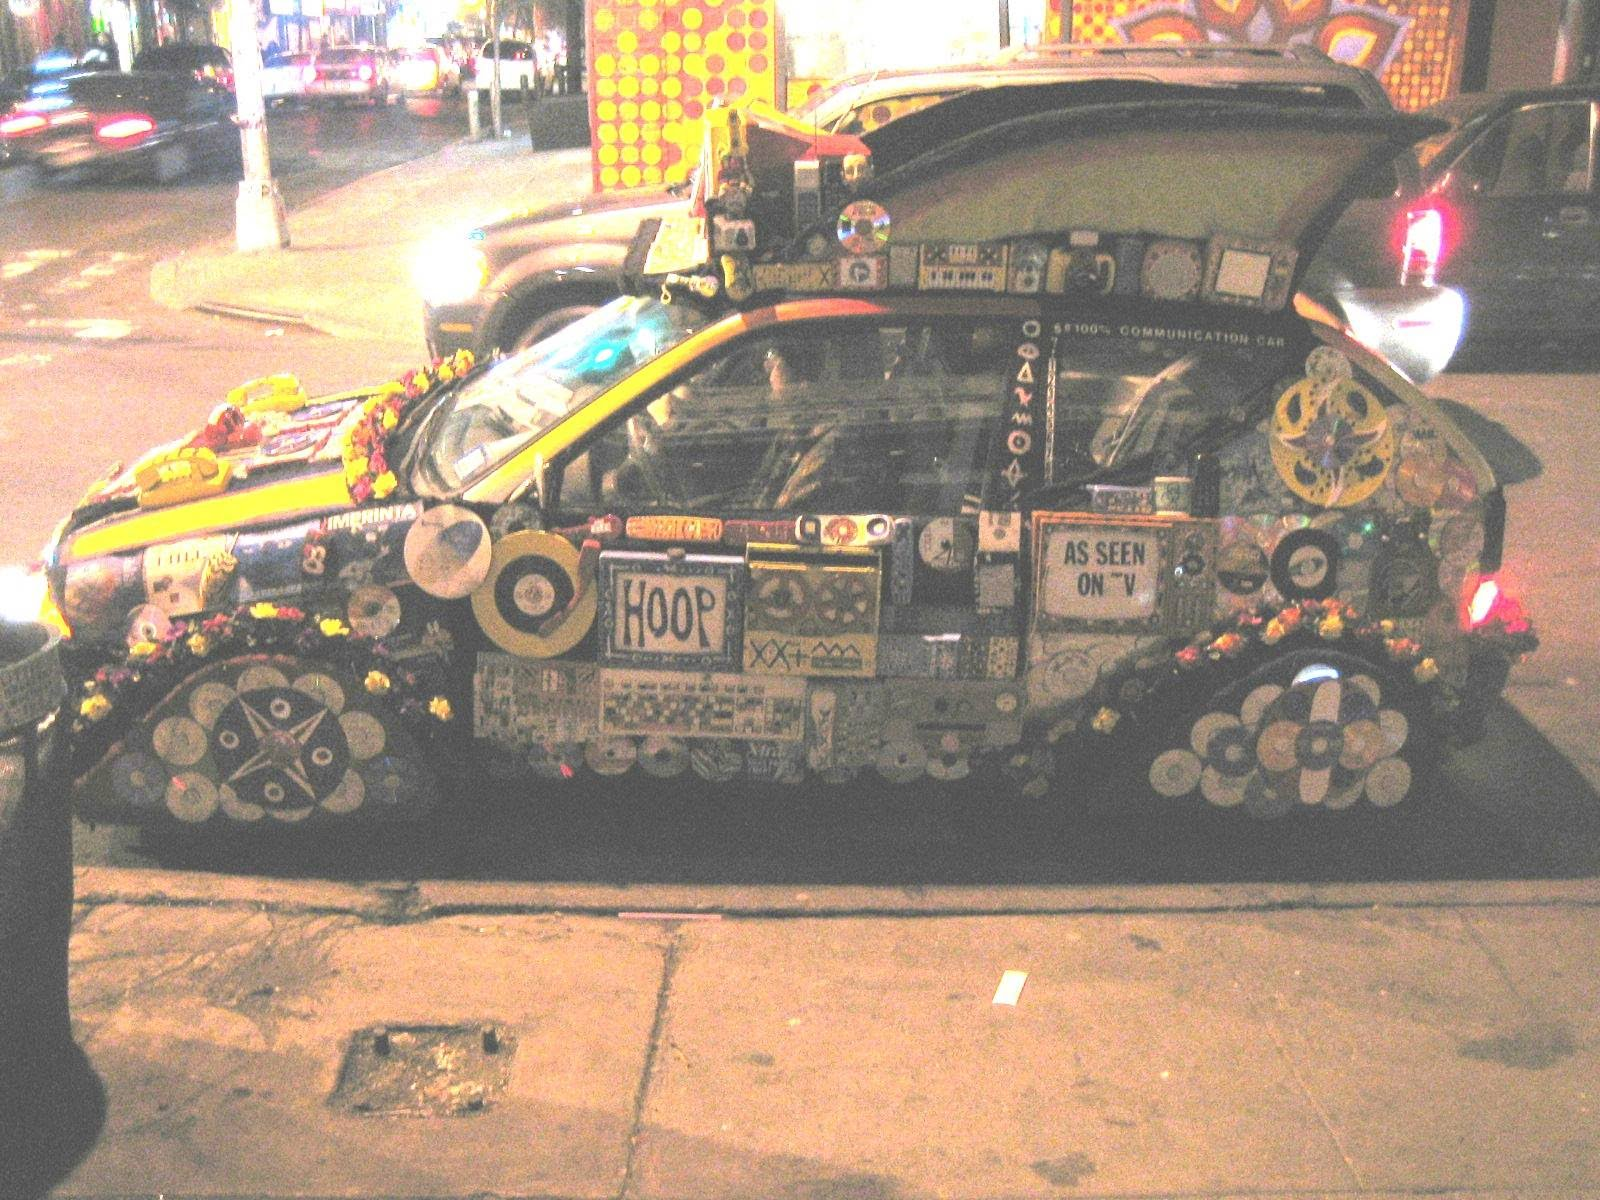 SoHo Freak car!